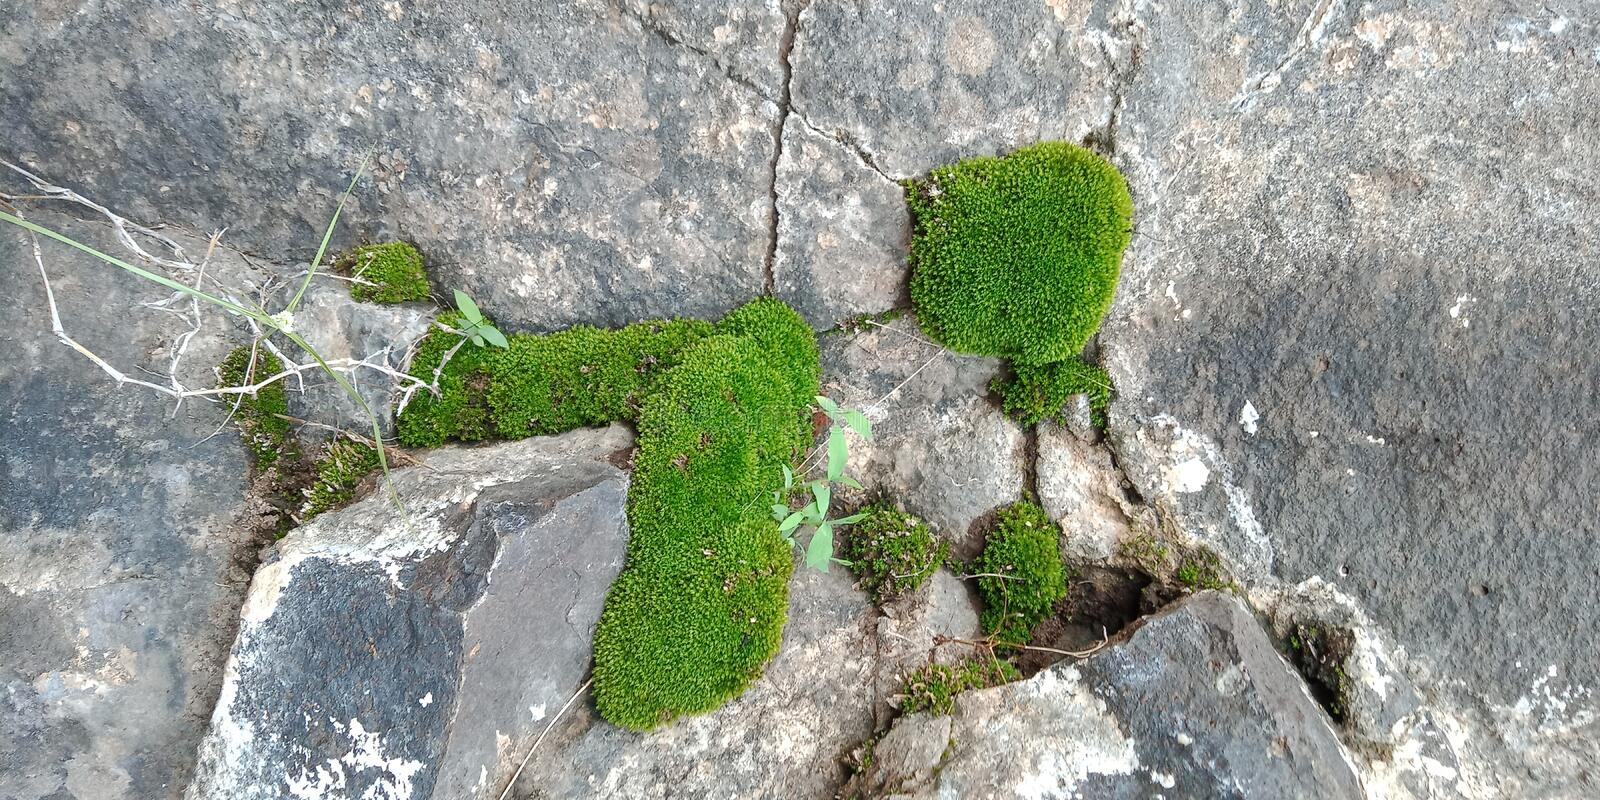 Moss on the rock textured background wallpaper, royalty free stock photos